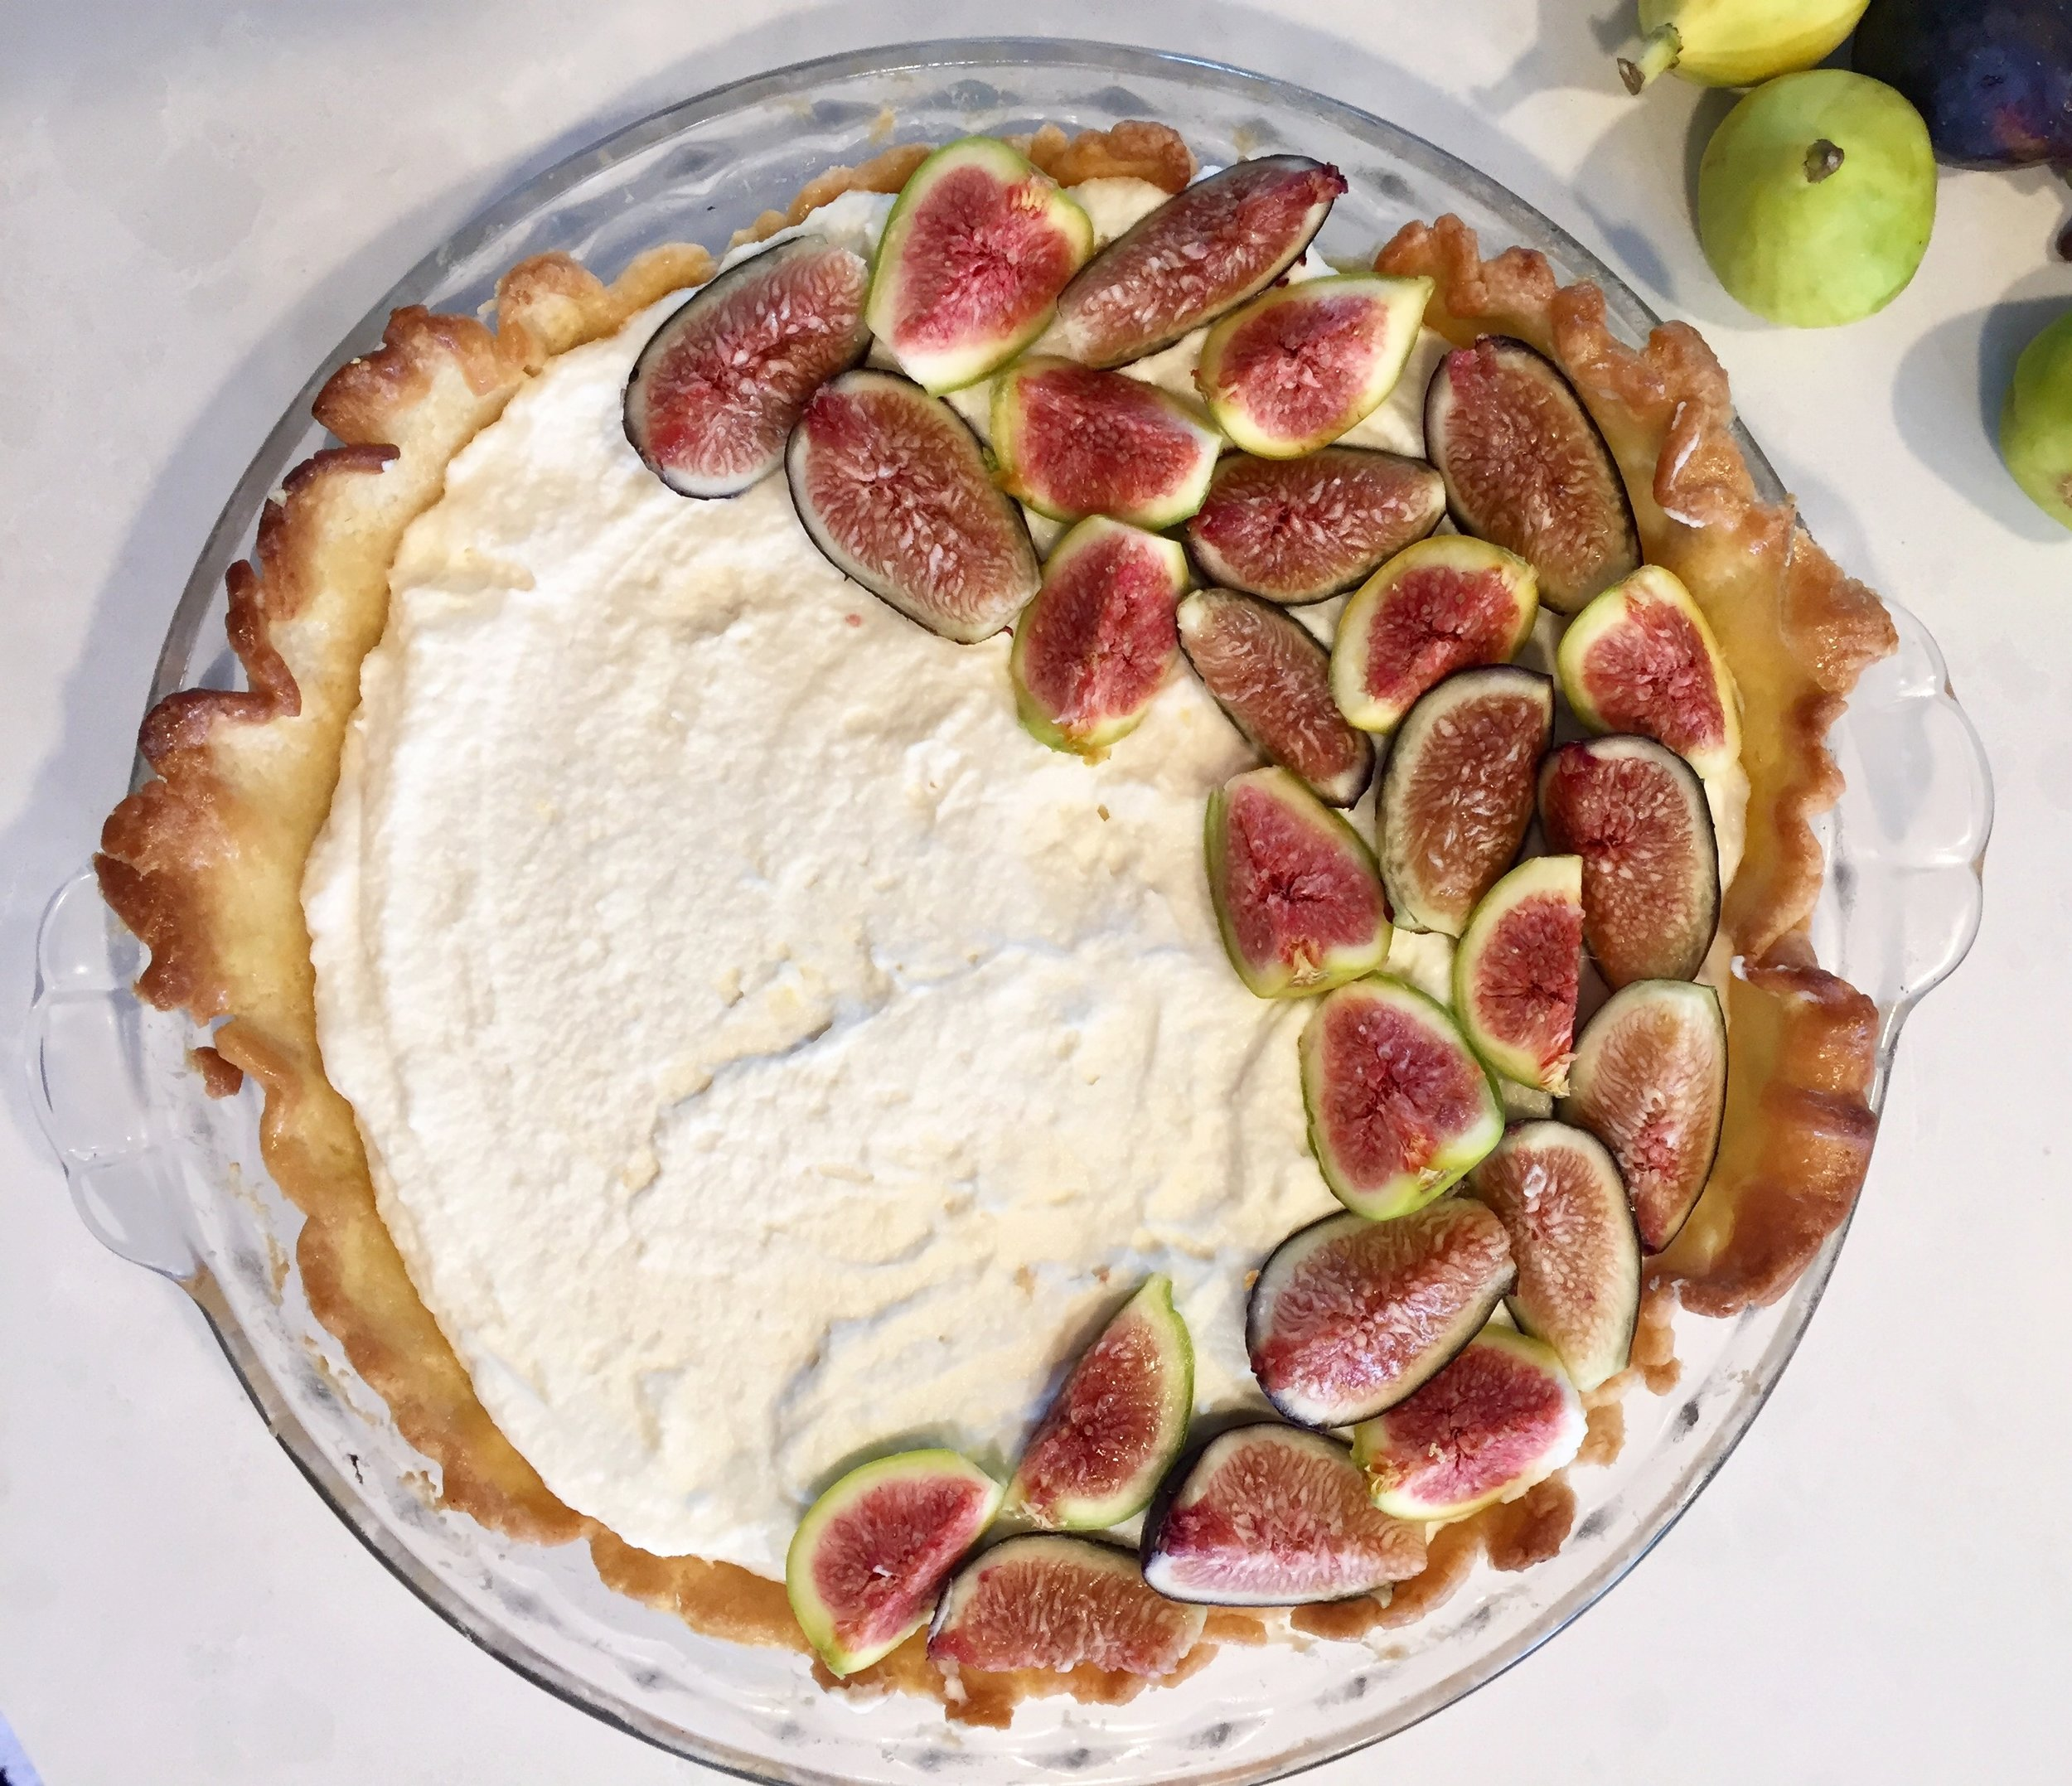 I've learned that the most perfect desserts never taste the best. This pie is rustic, real and every bit is delicious!